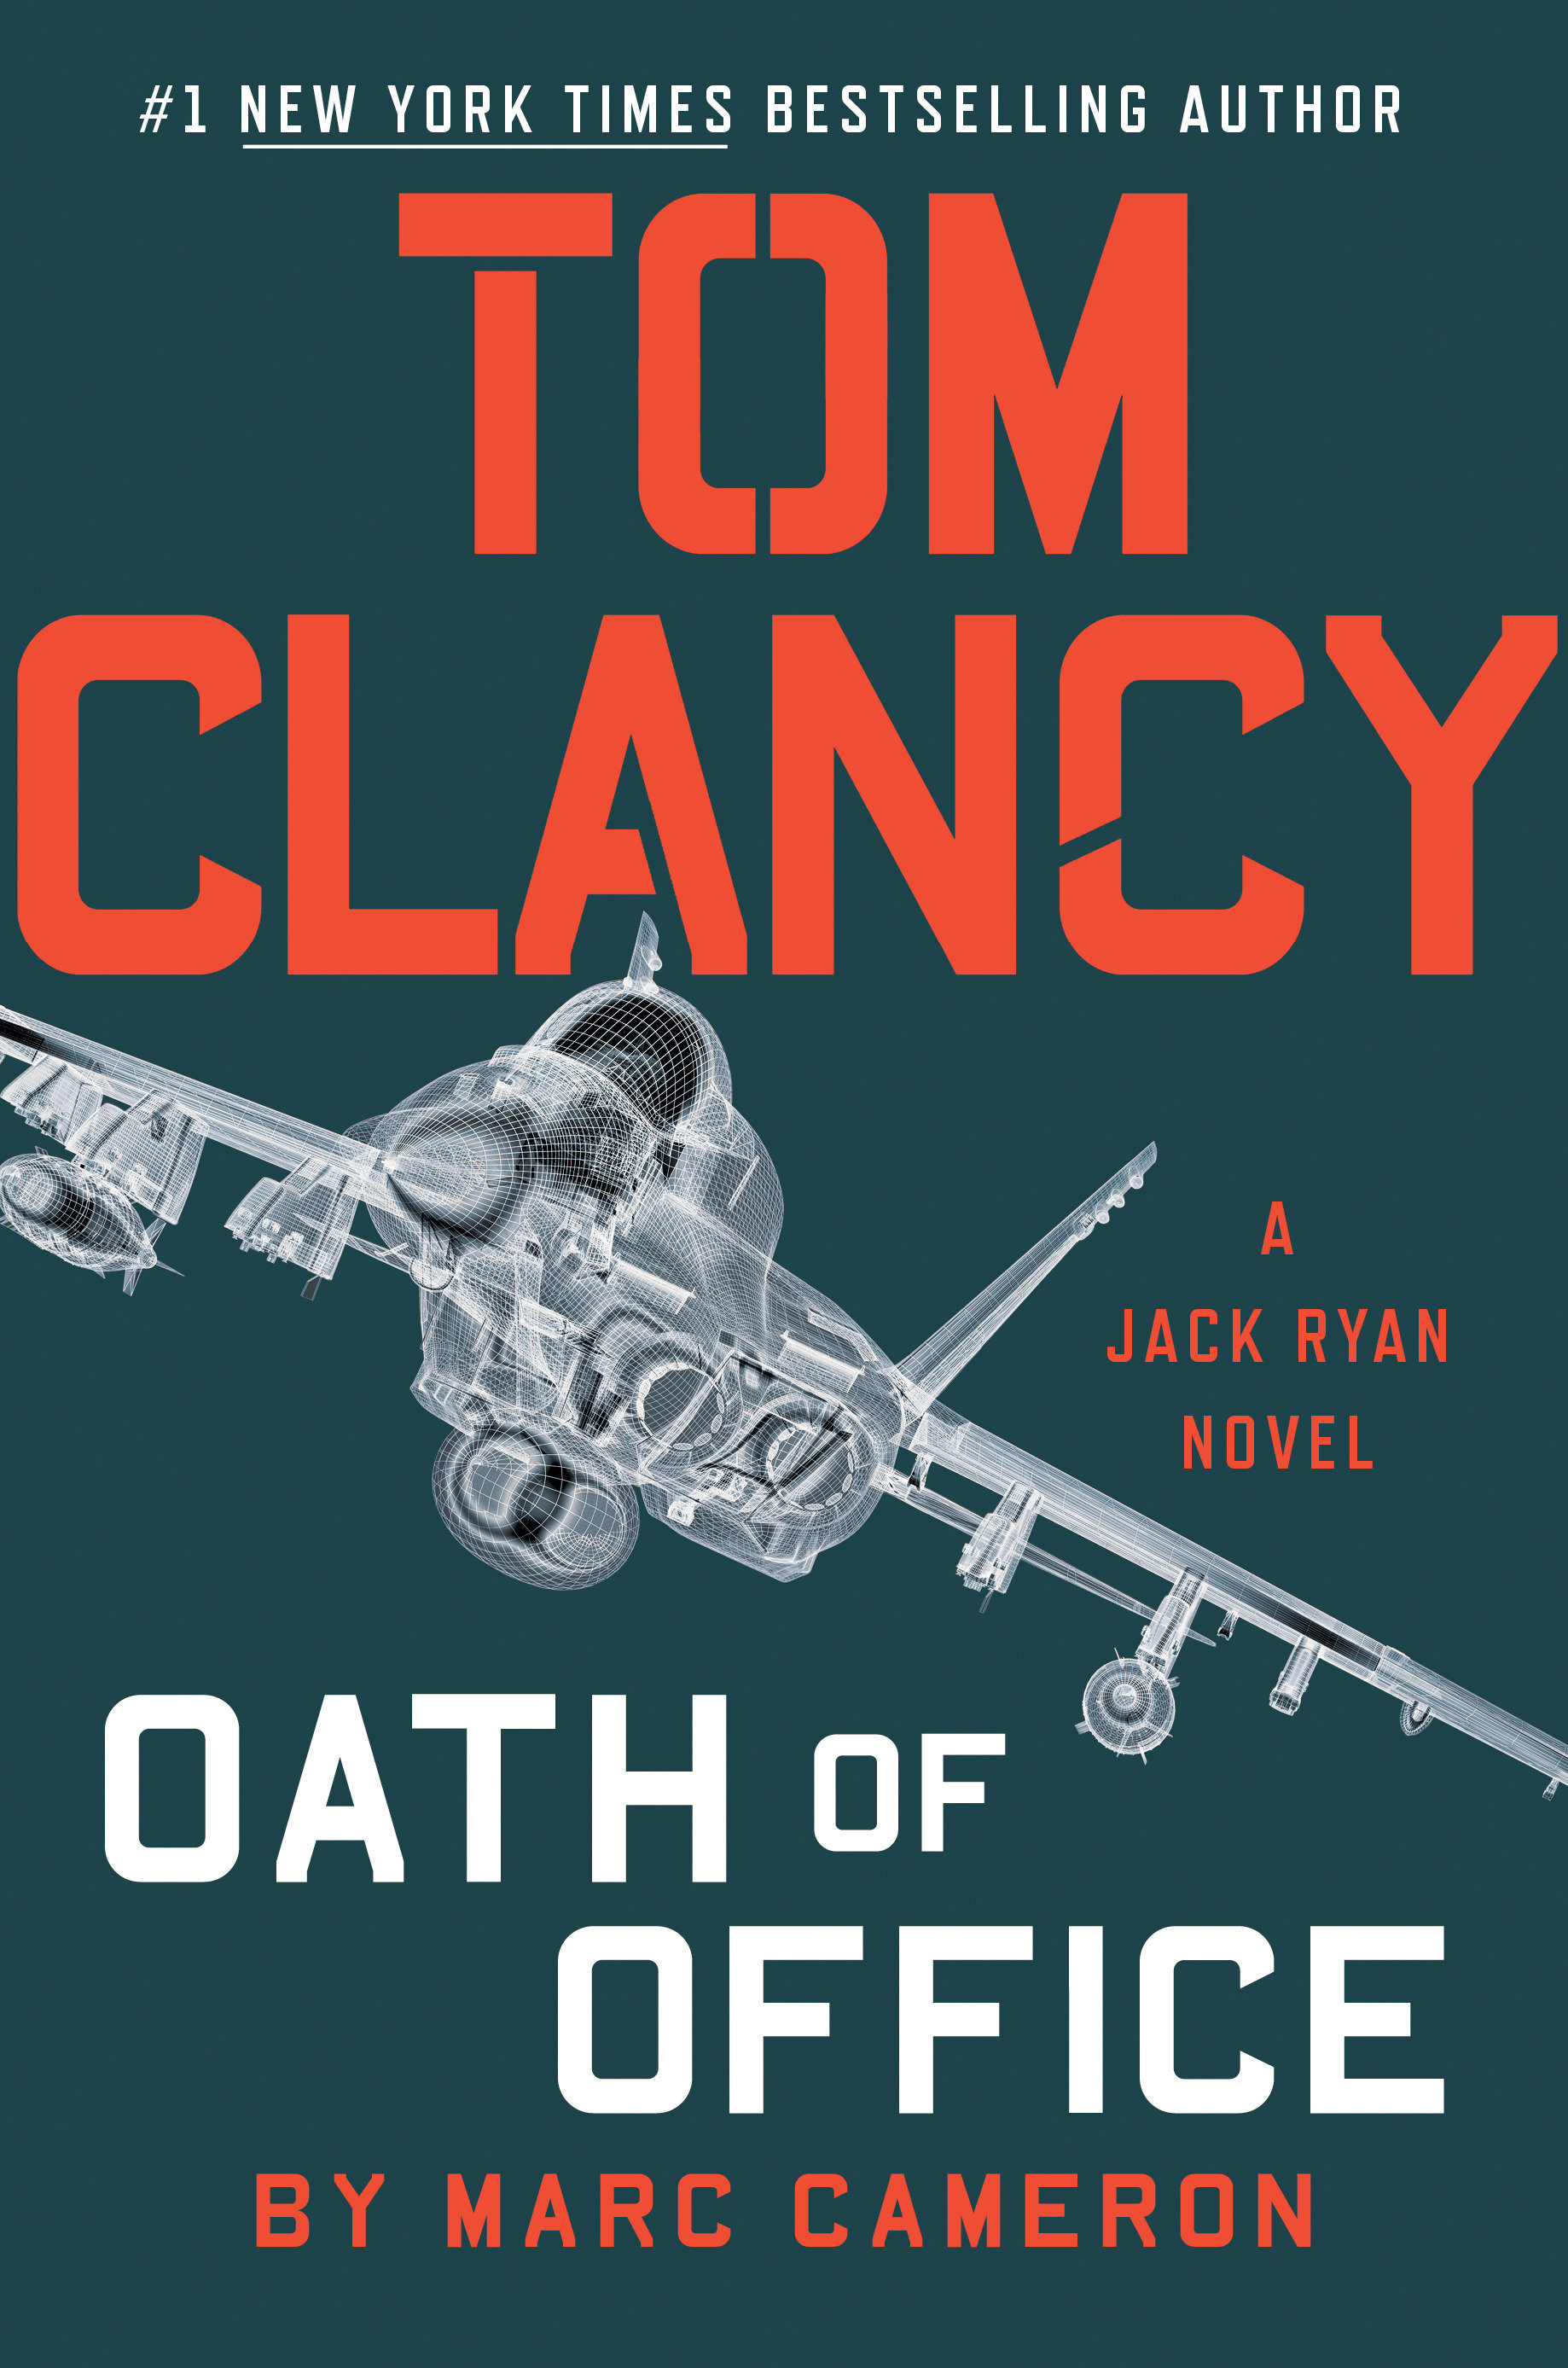 Tom Clancy Oath of Office cover image